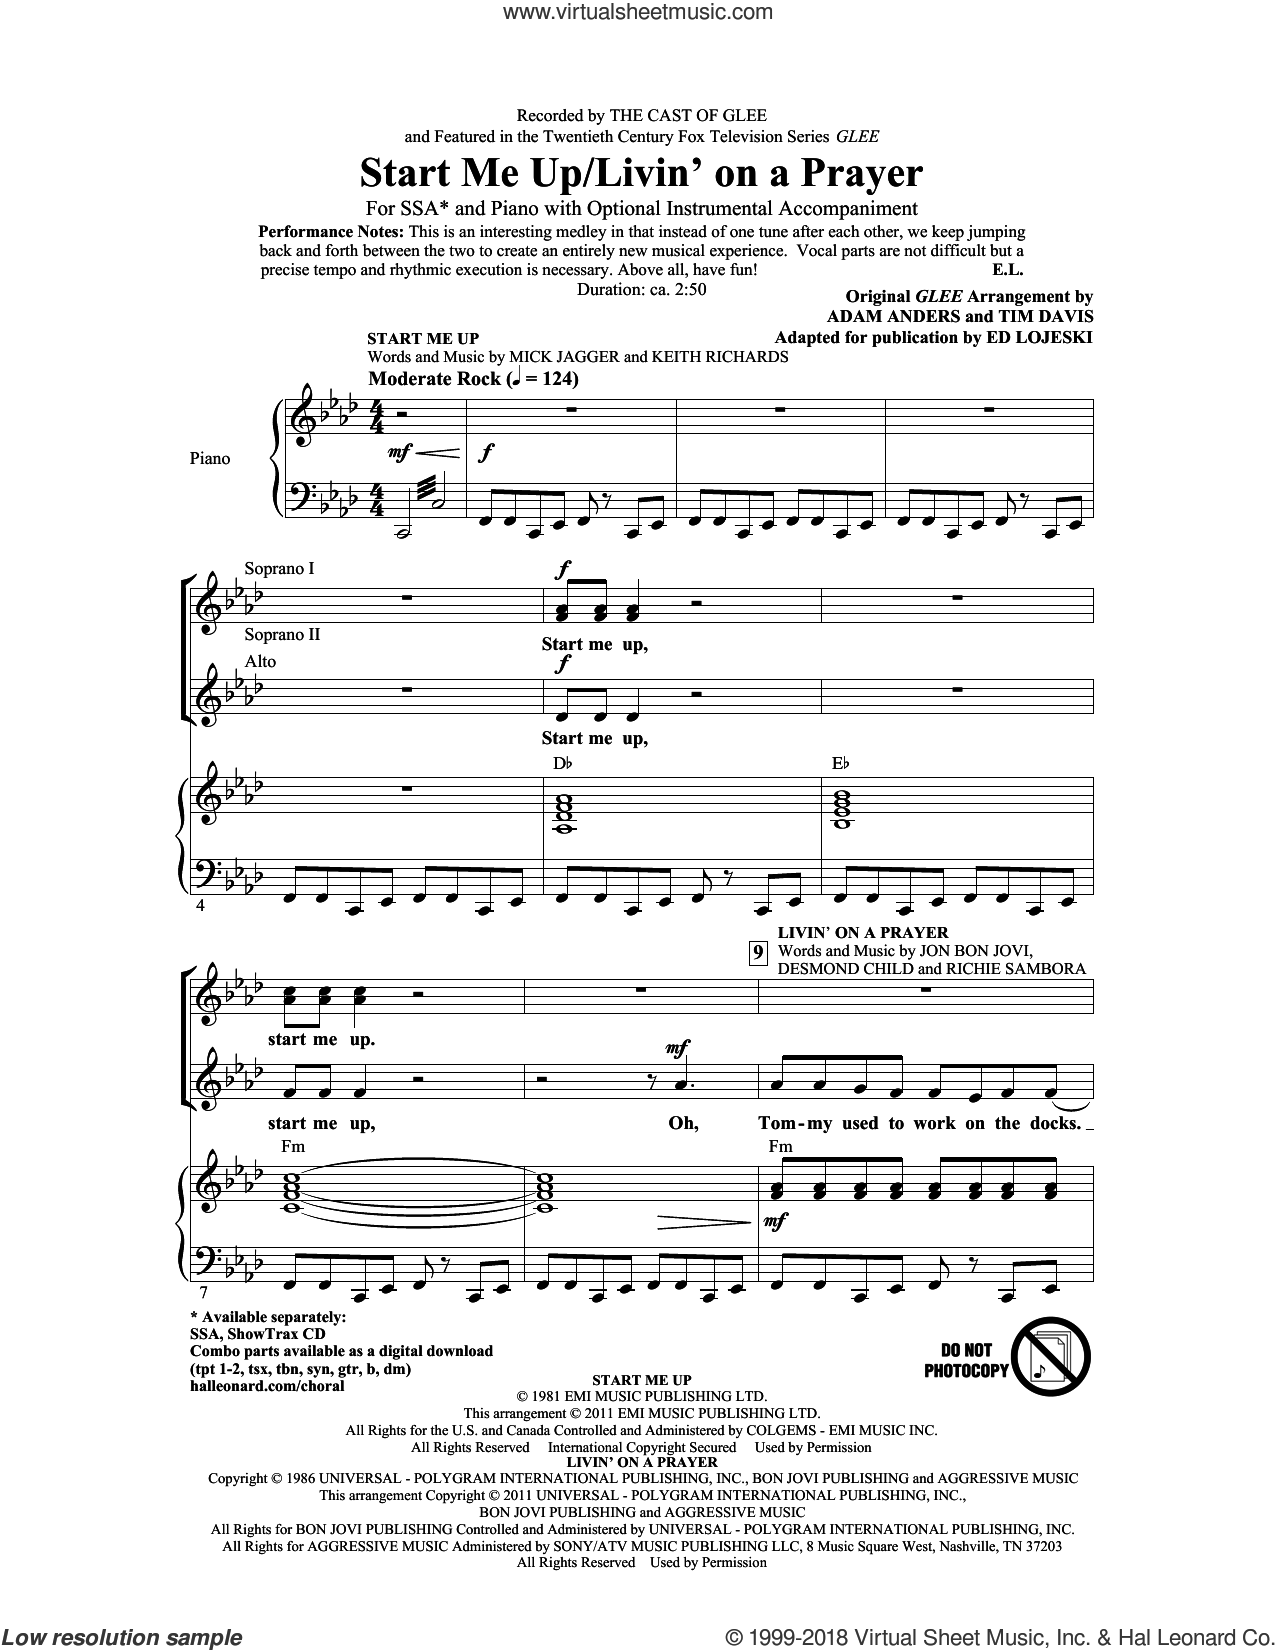 Start Me Up/Livin' On A Prayer sheet music for choir (soprano voice, alto voice, choir) by Mick Jagger, Bon Jovi, Ed Lojeski, Glee Cast, Keith Richards and The Rolling Stones. Score Image Preview.